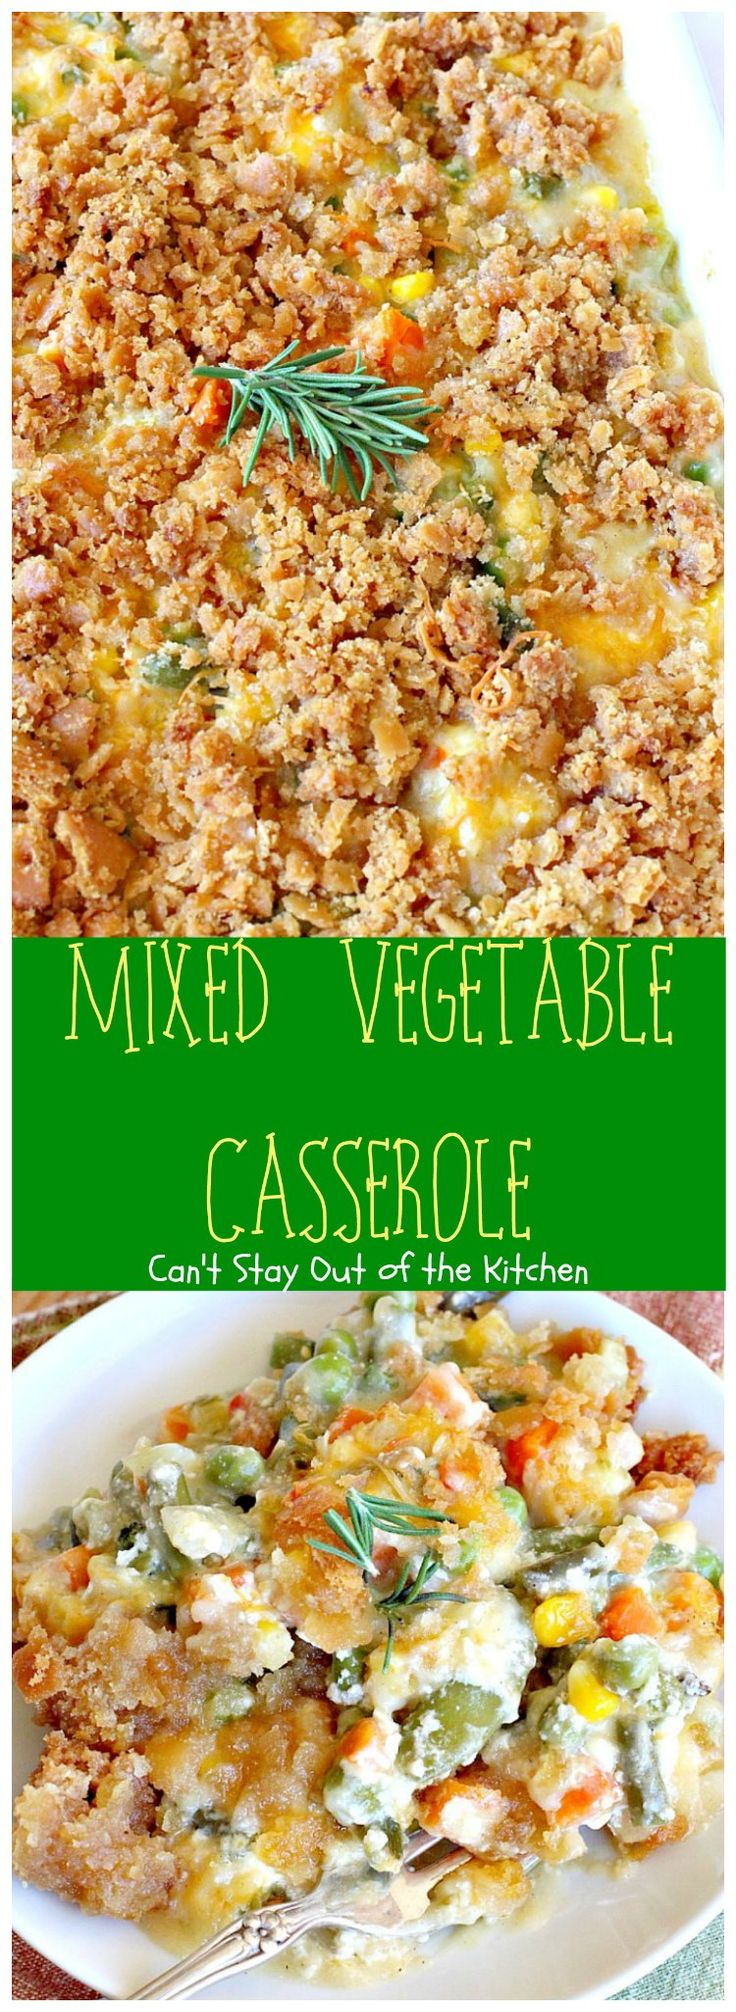 Mixed Vegetable Casserole | Can't Stay Out of the Kitchen | this is a scrumptious